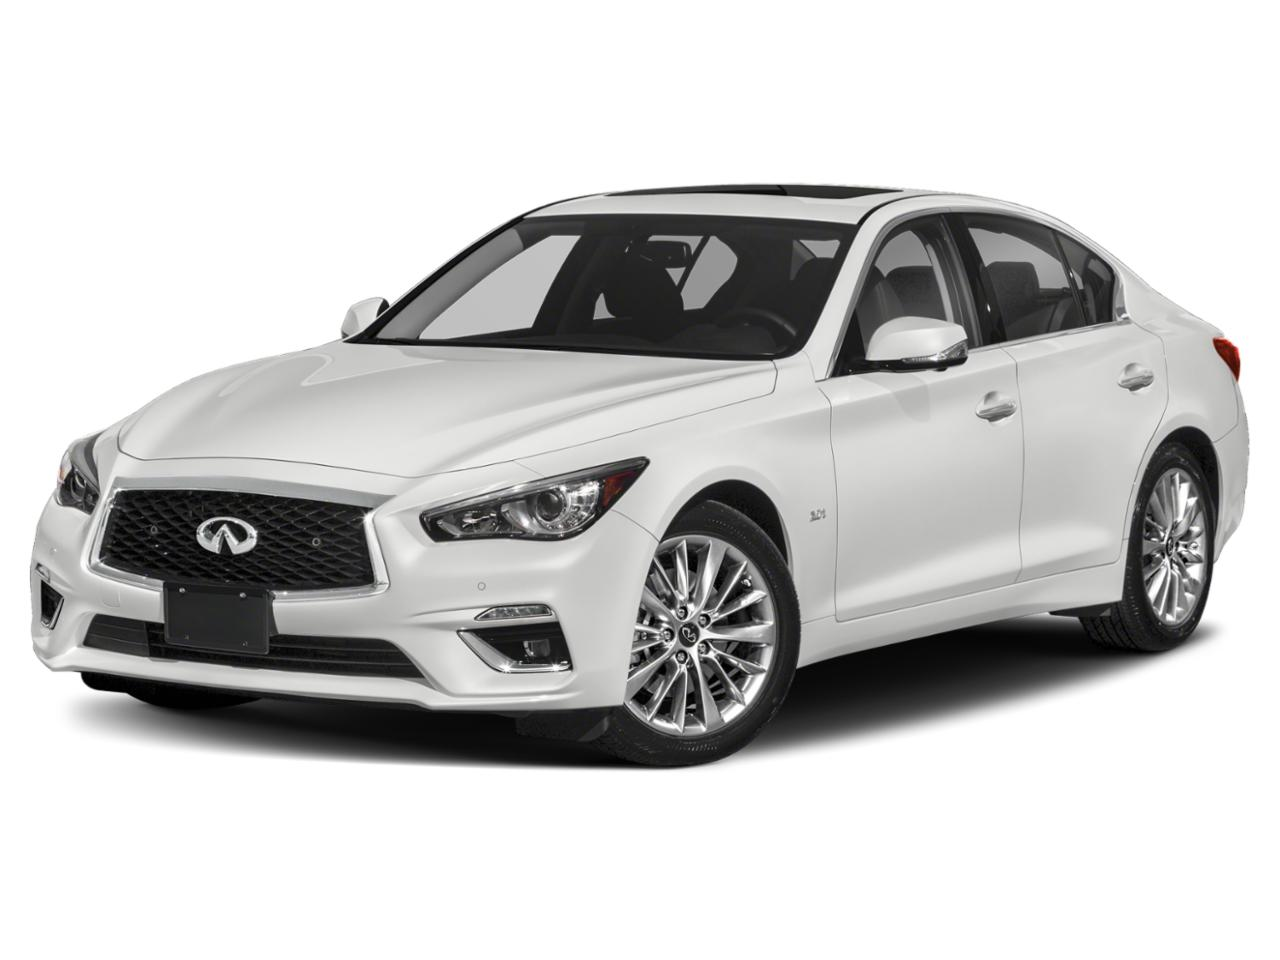 2021 INFINITI Q50 Vehicle Photo in San Antonio, TX 78230